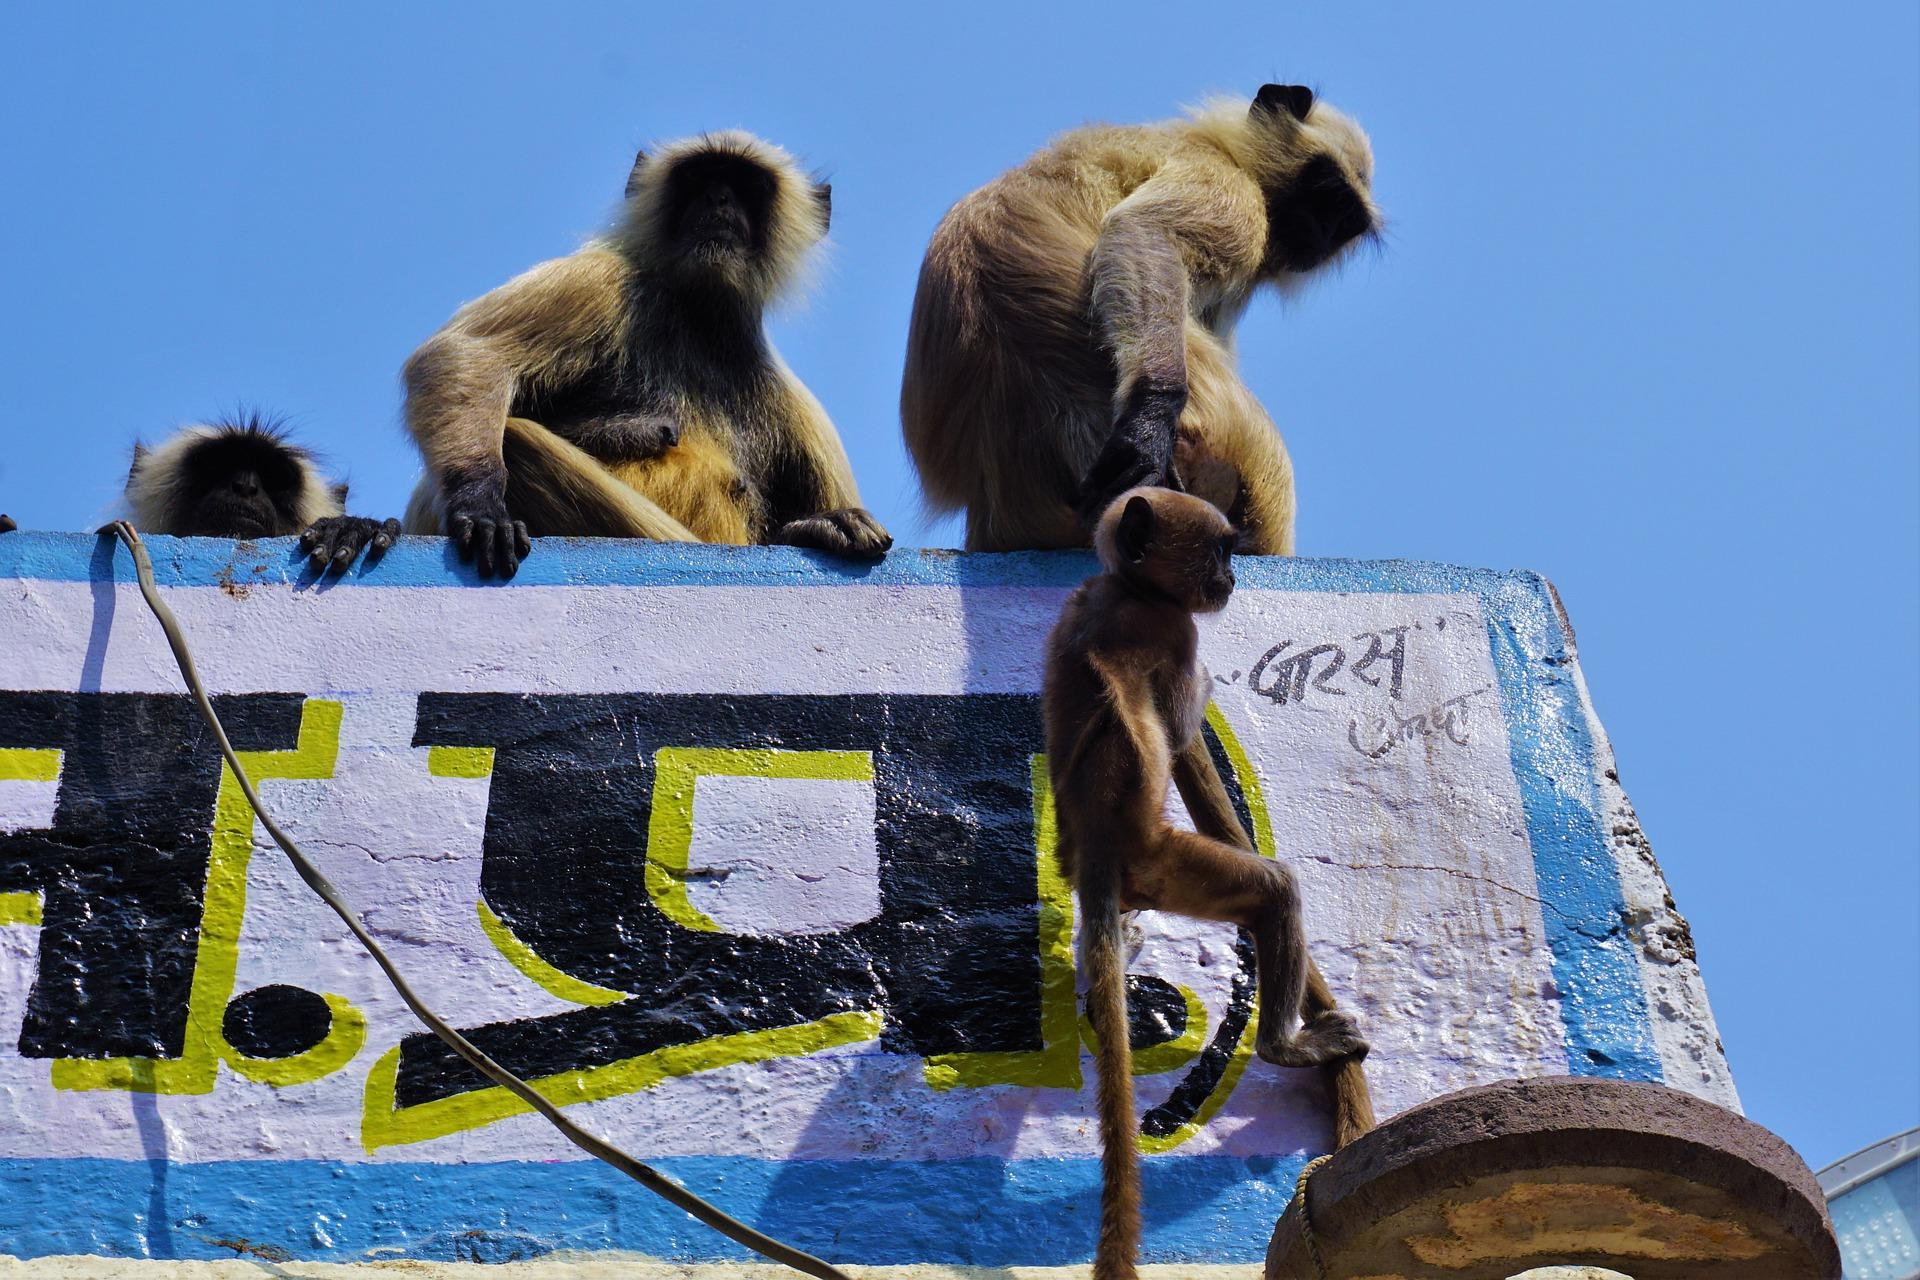 Monkeys in India attacked medic and stole coronavirus tests